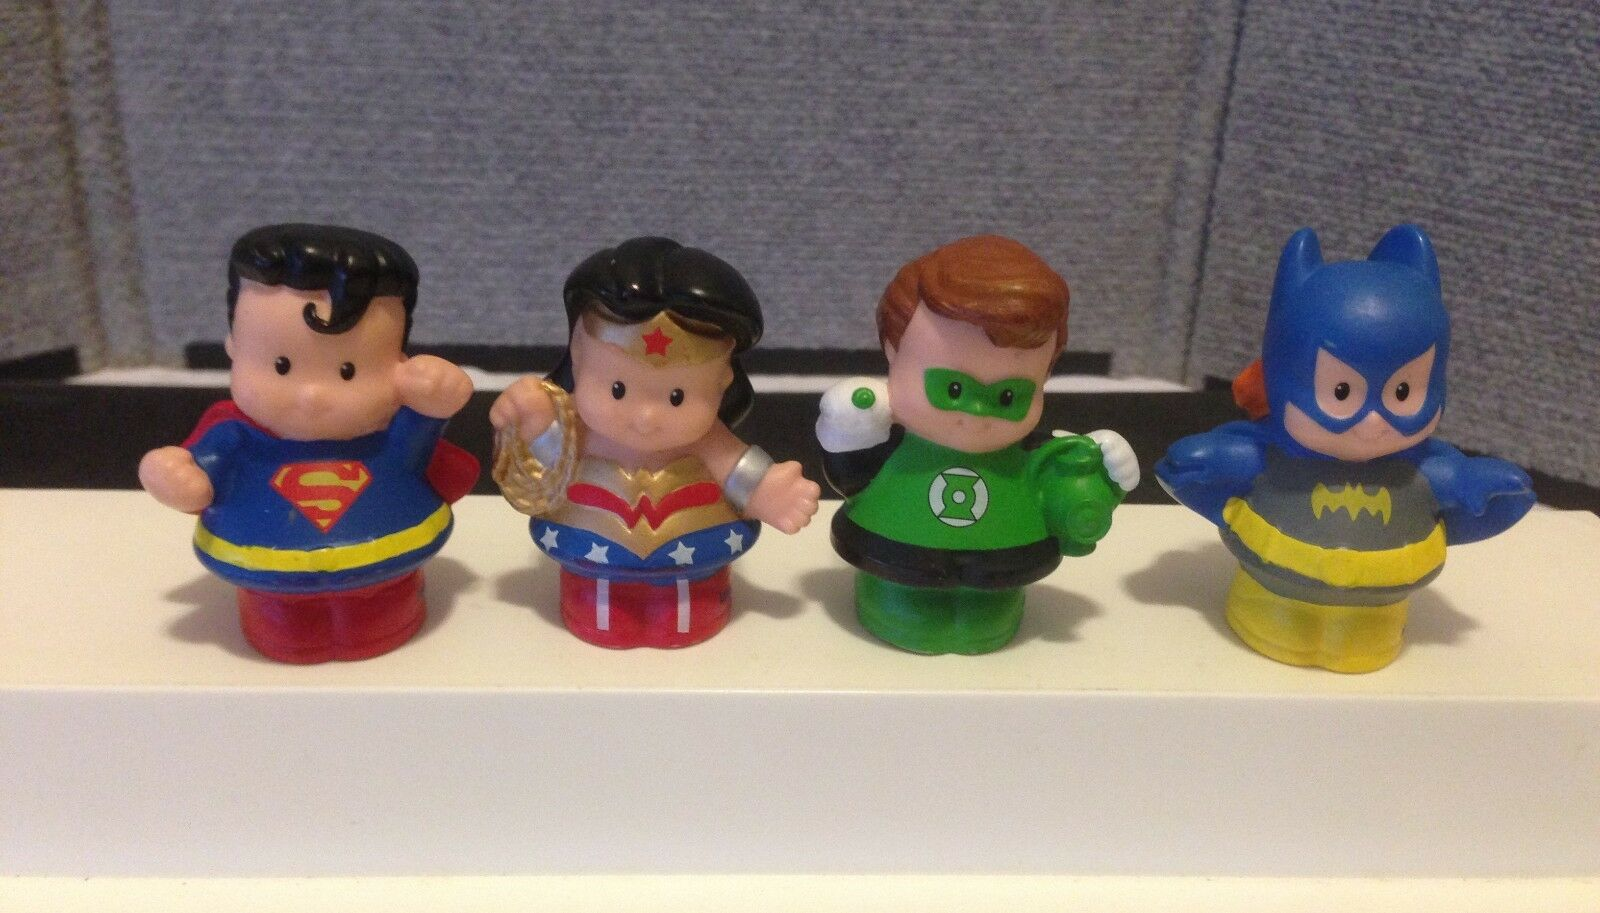 LITTLE PEOPLE DC SUPER HERO LOT WONDER WOMAN, BATGIRL, GREEN LANTERN, & SUPERMAN